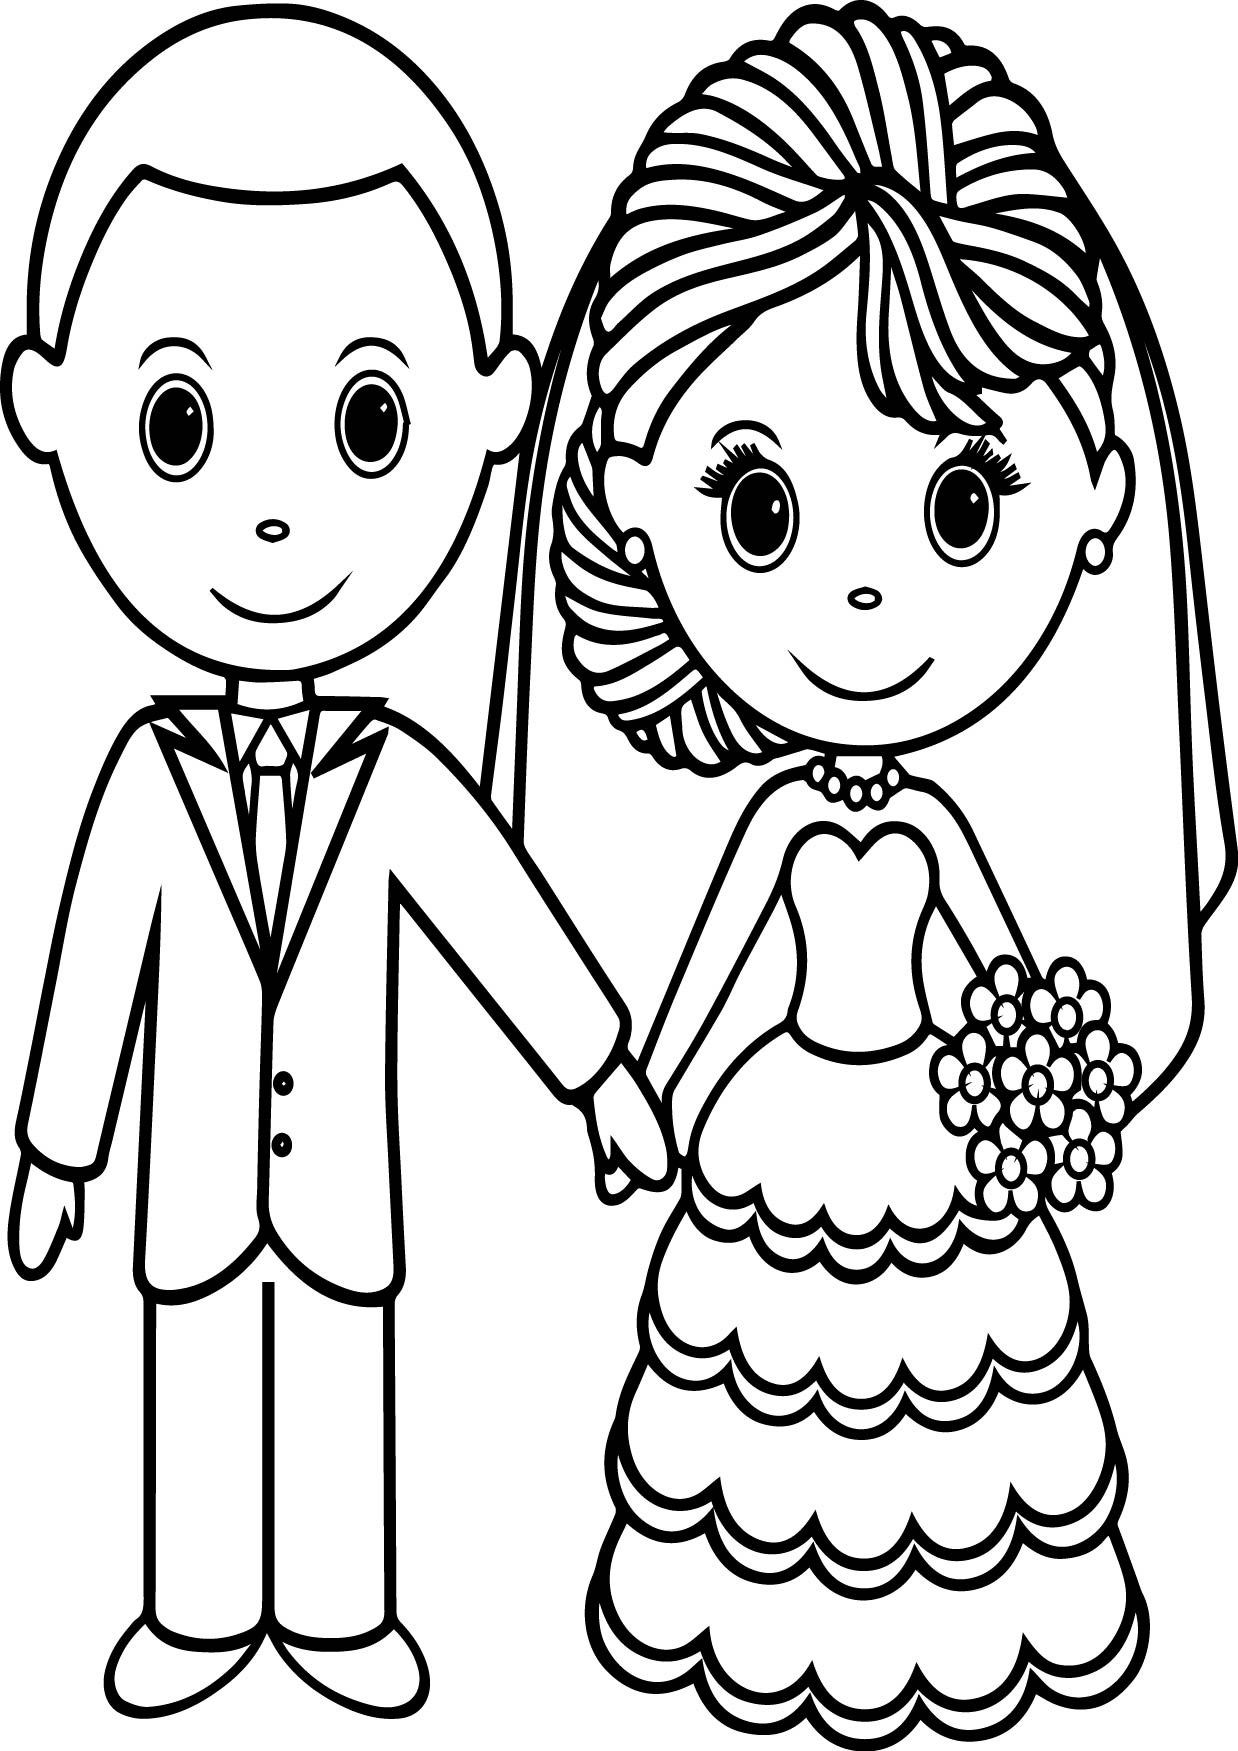 7+ Inspiration Photo of Couple Coloring Pages - davemelillo.com